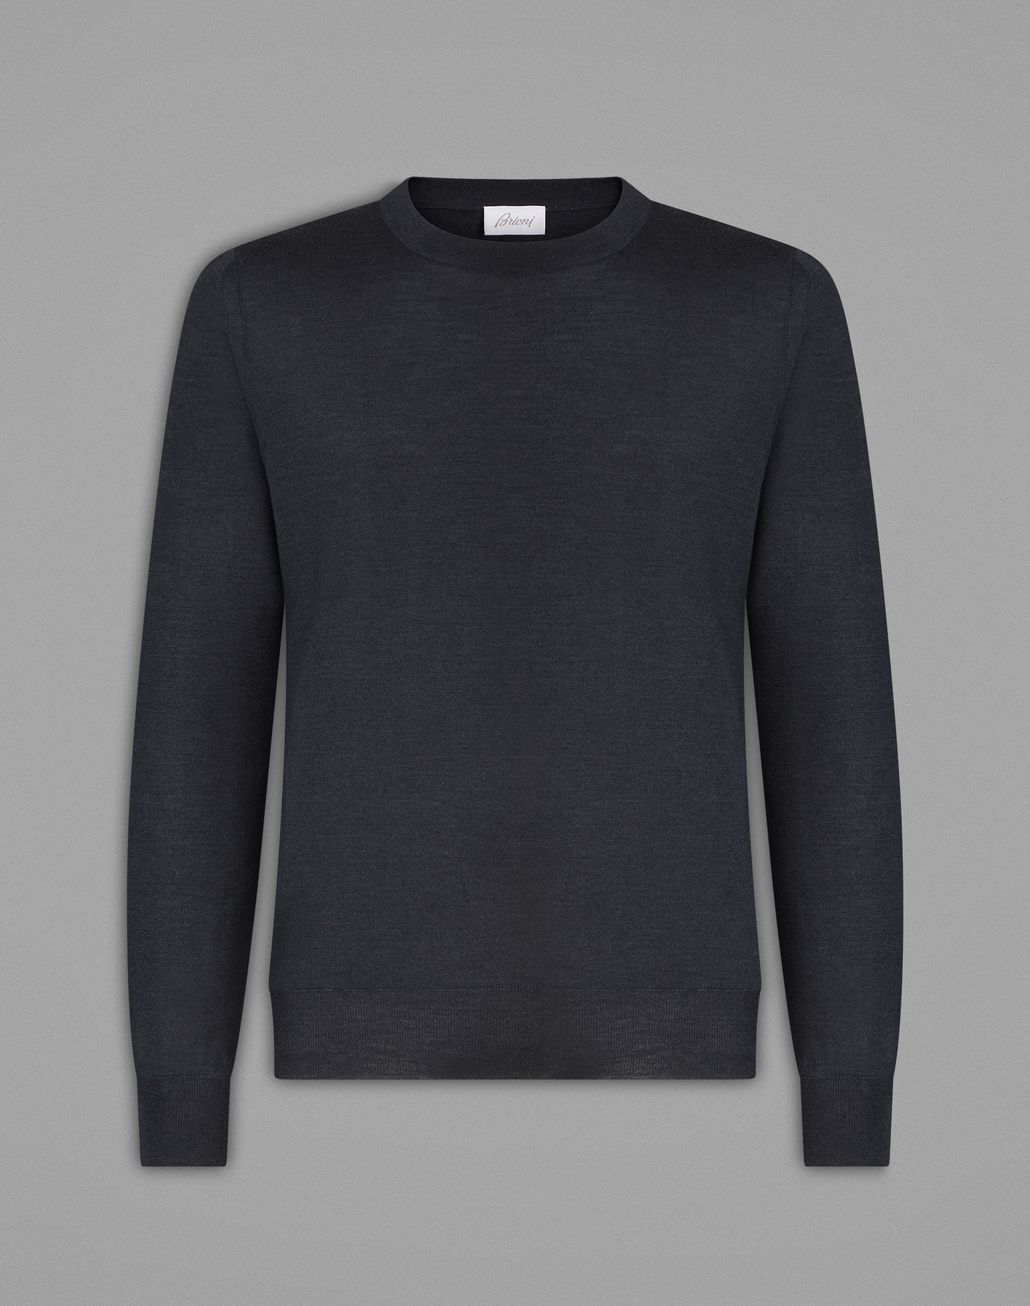 BRIONI 'Essential' Grey Crew-Neck Sweater Knitwear Man f